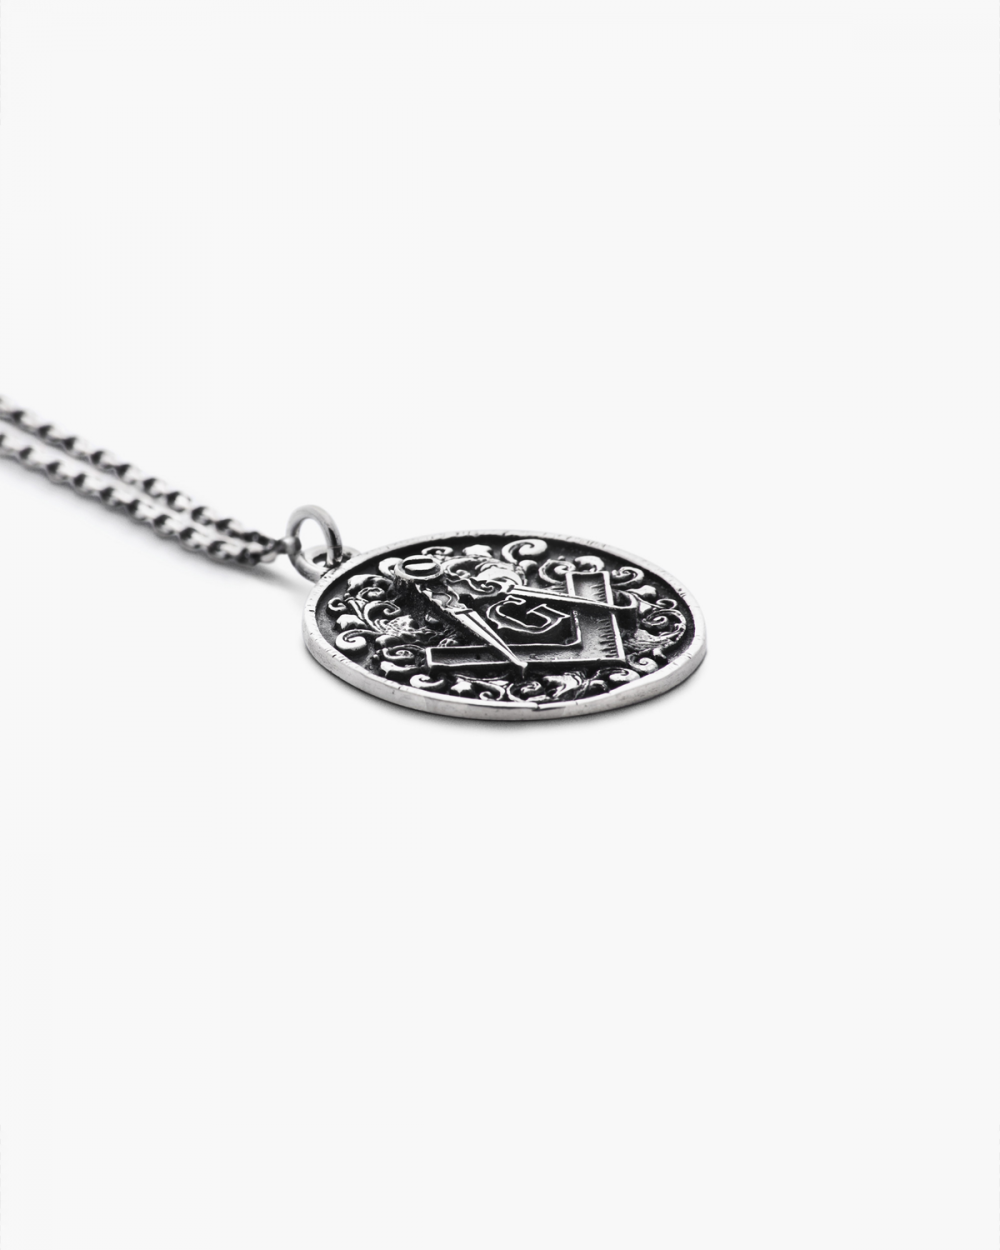 Archive Sale ANTIQUED SQUARE AND COMPASSES PENDANT NOVE25